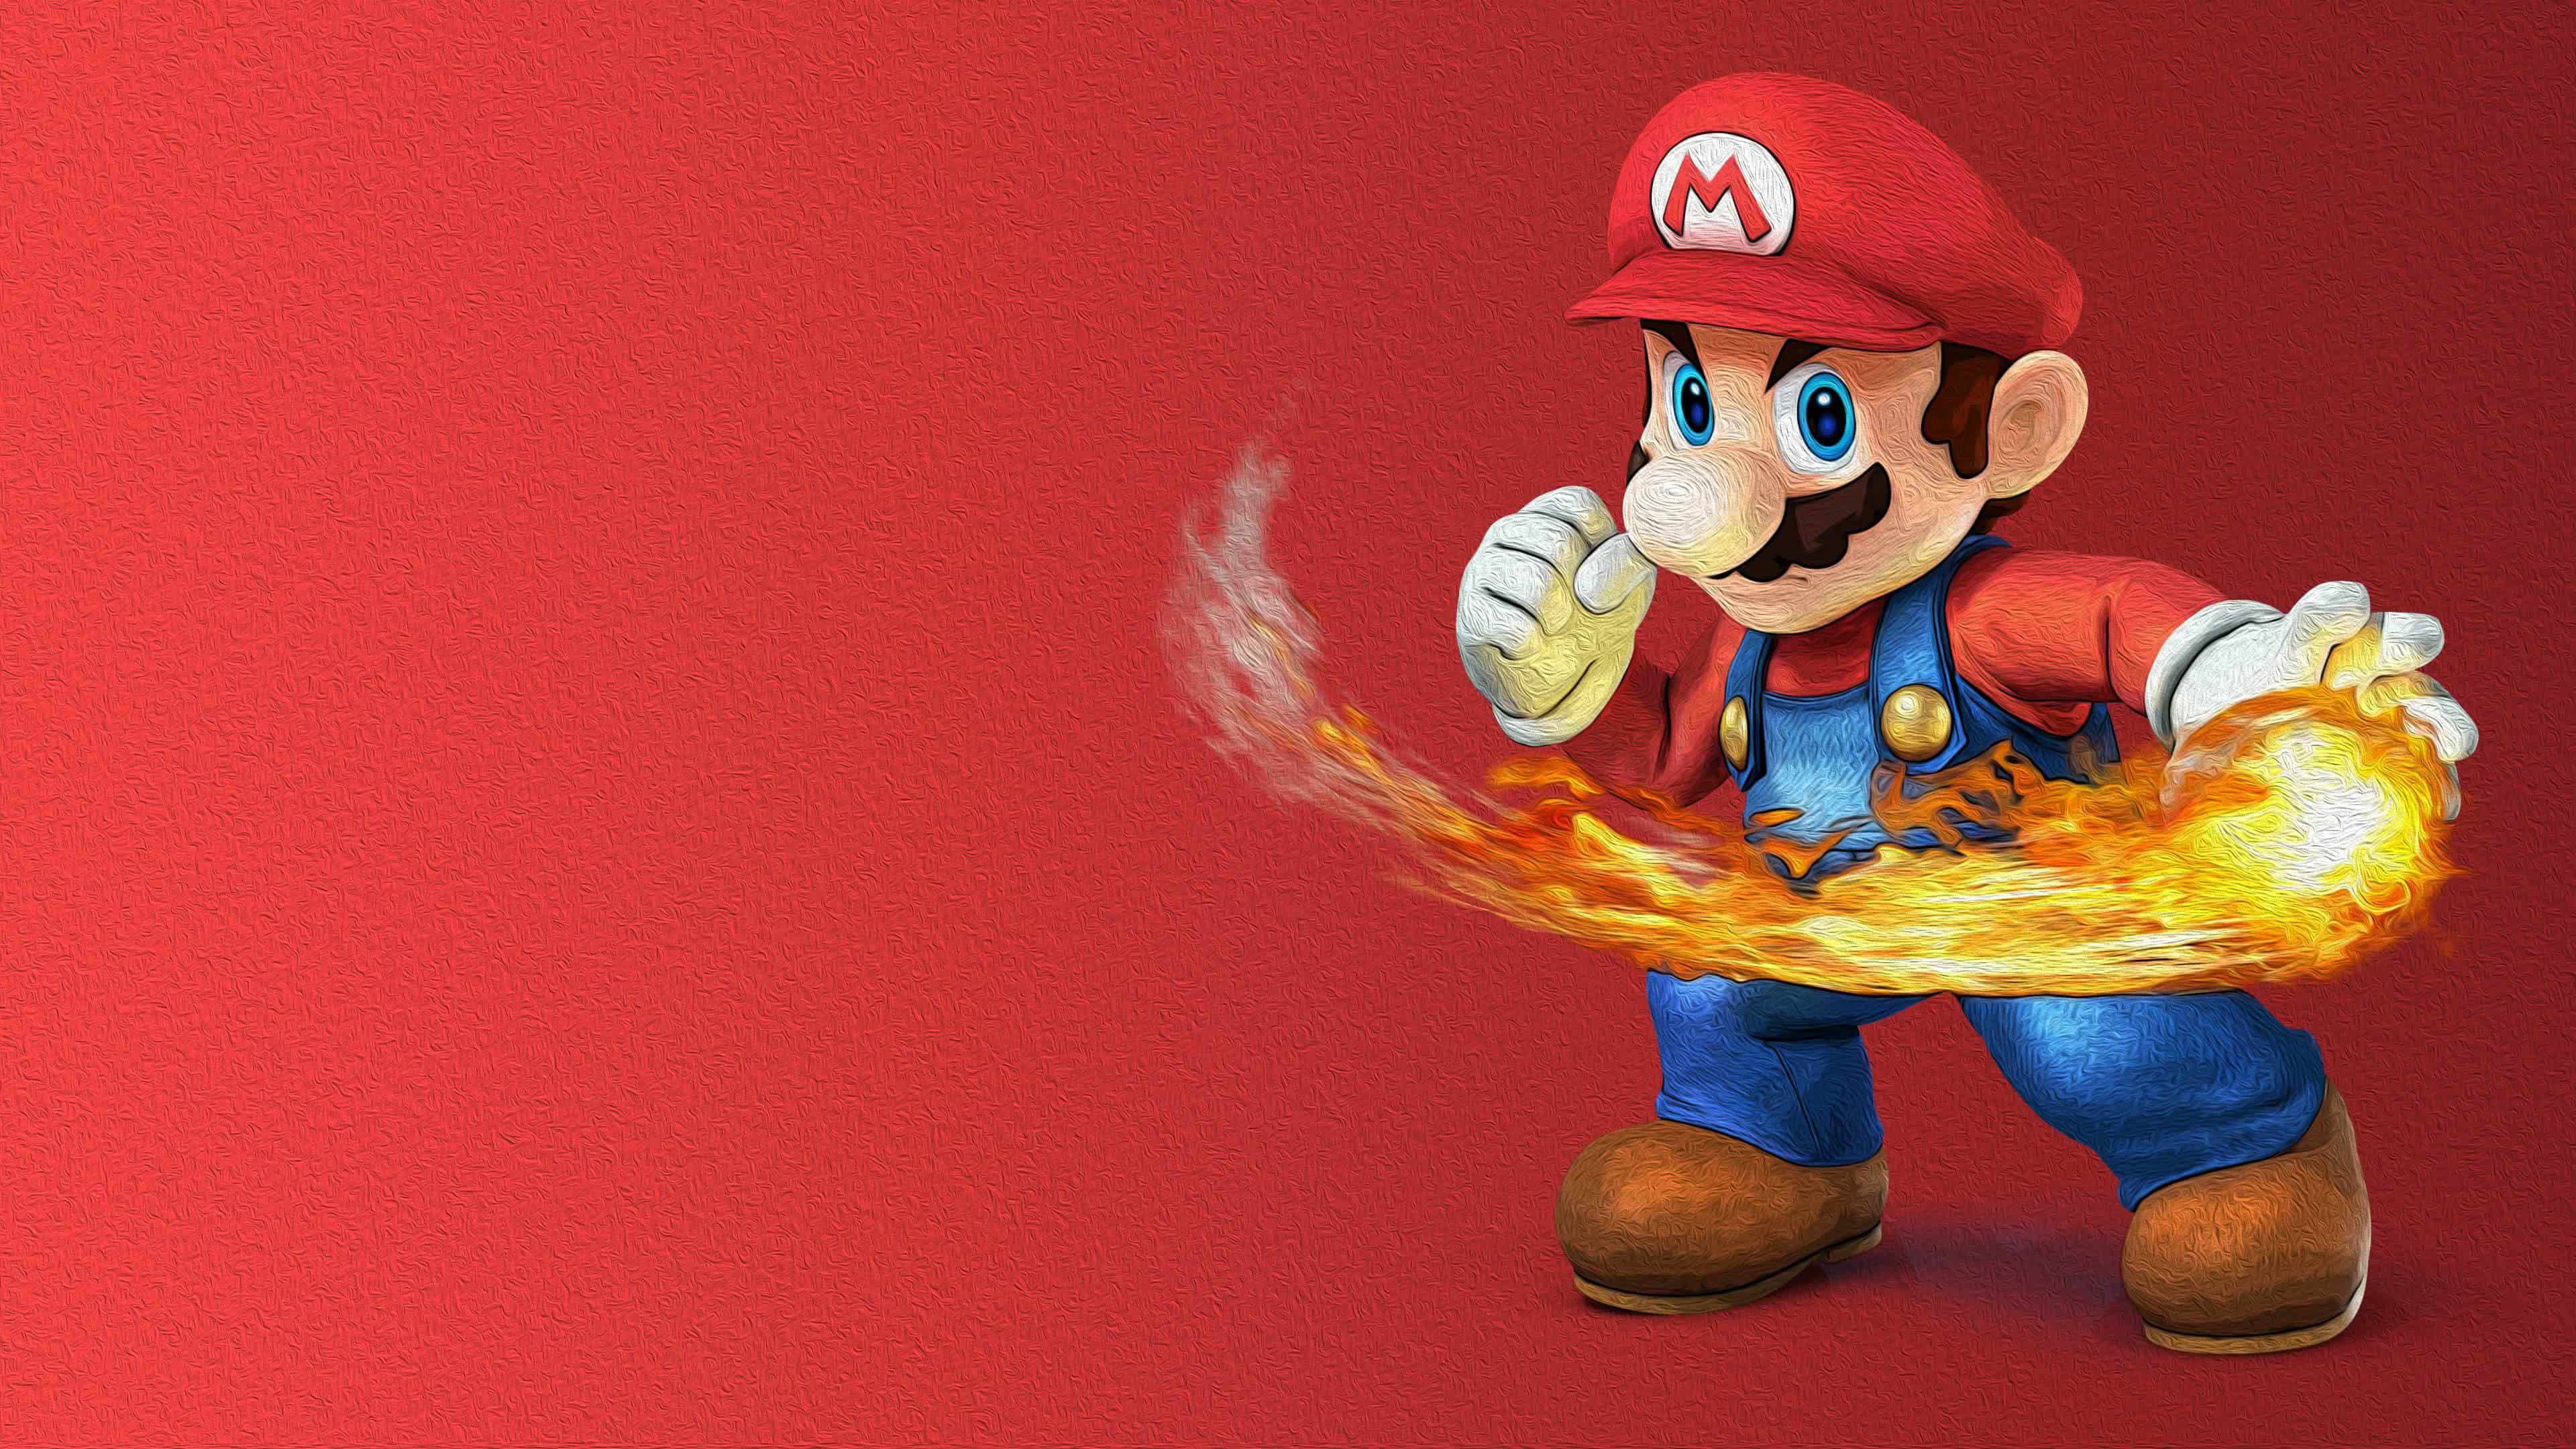 super smash bros mario uhd 4k wallpaper